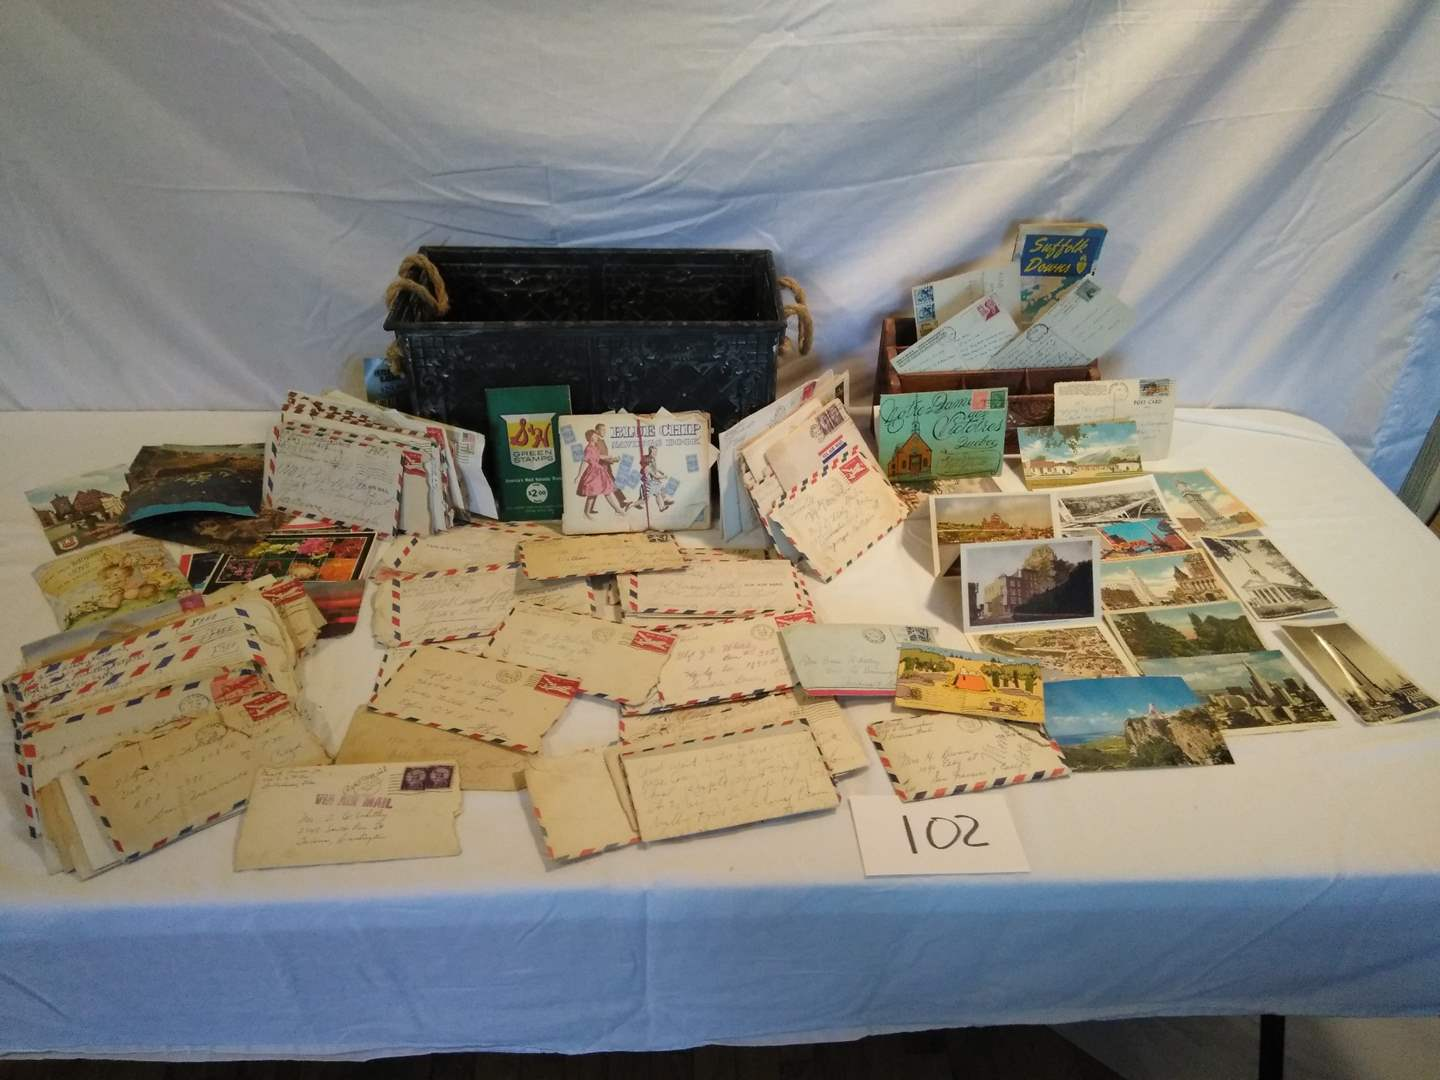 Lot # 102 - Vintage: Postcards, old letters, tin box, S&H green stamps, blue chips savings book, more (main image)